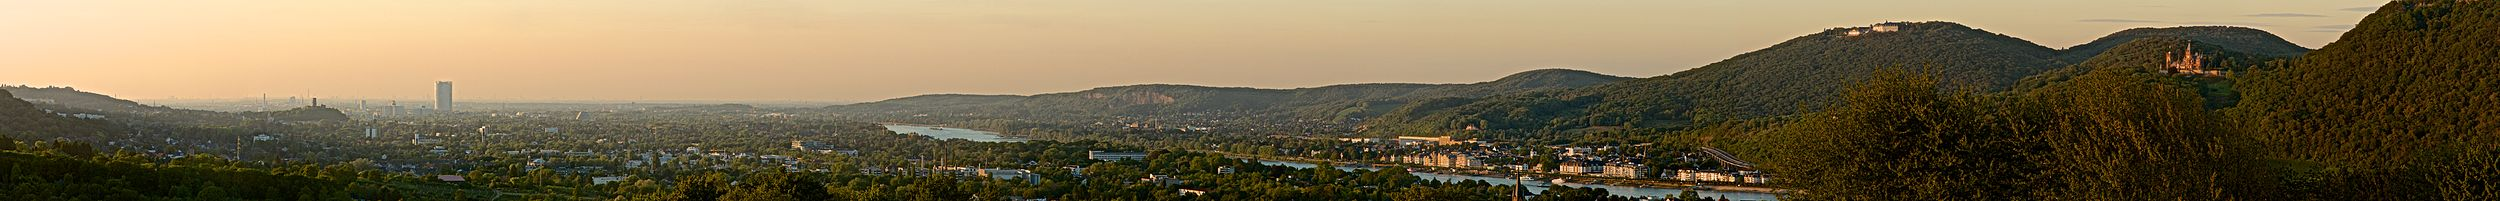 Panoramic view of Bonn from the Rodderberg